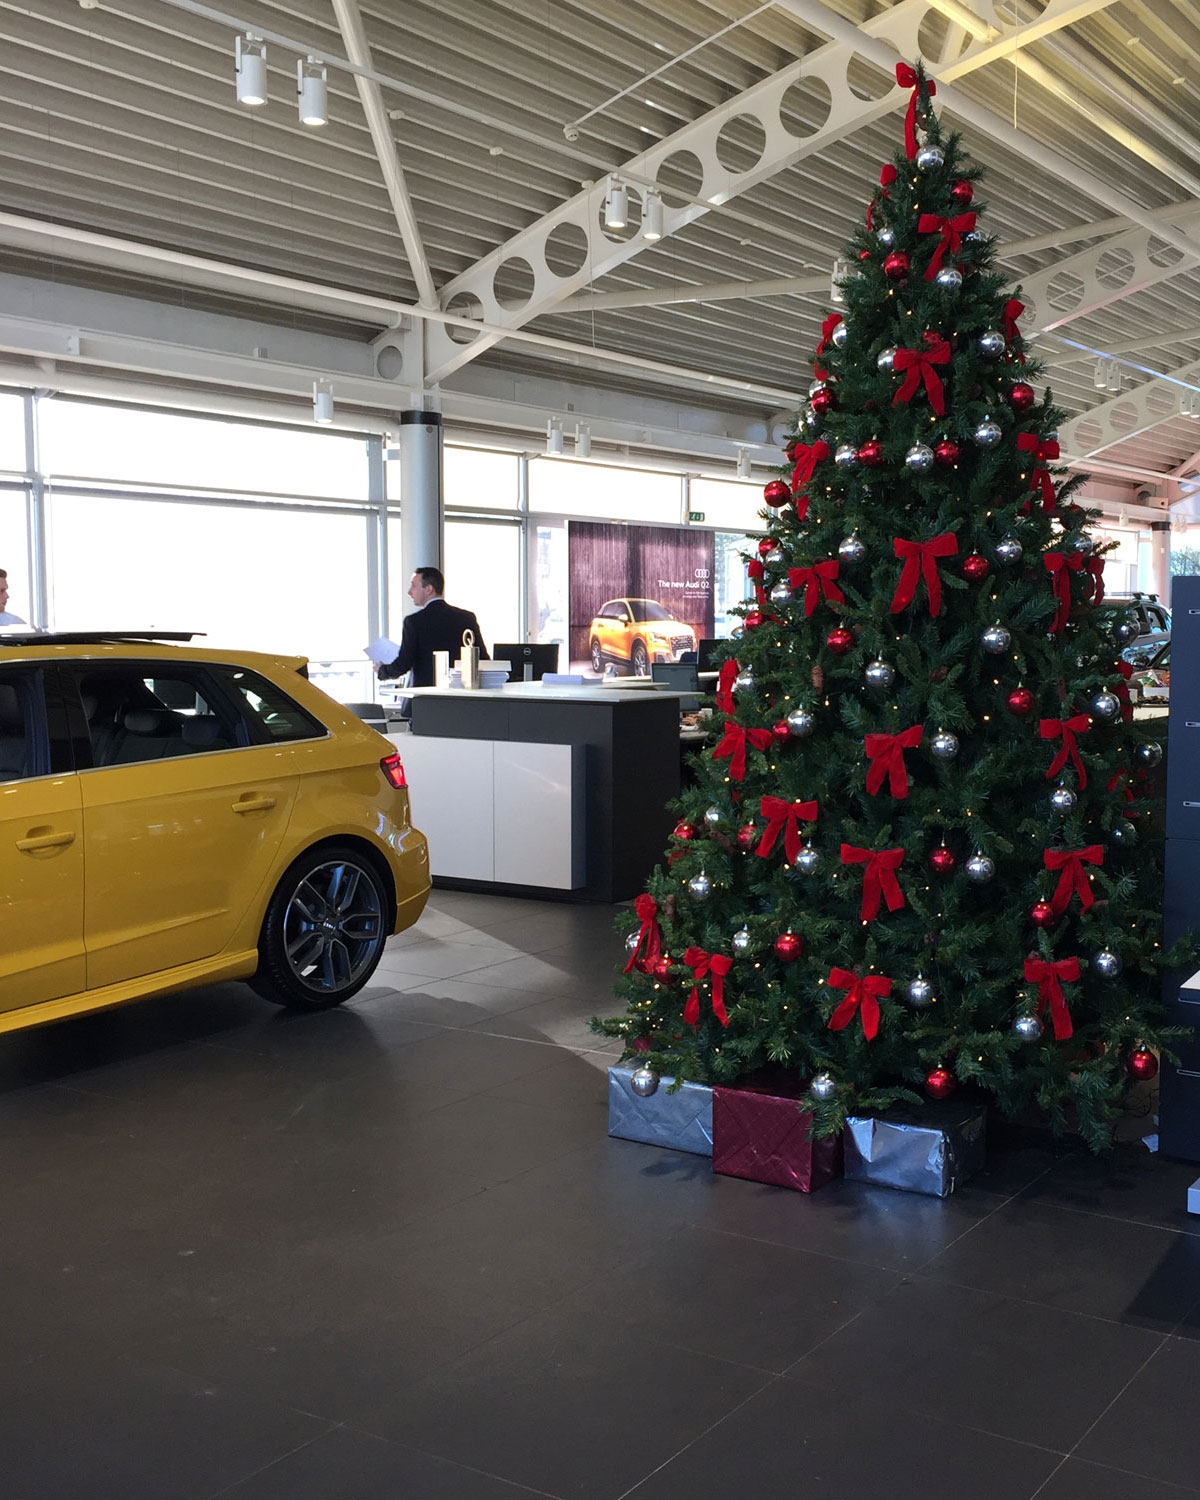 audi showroom christmas tree with red bows